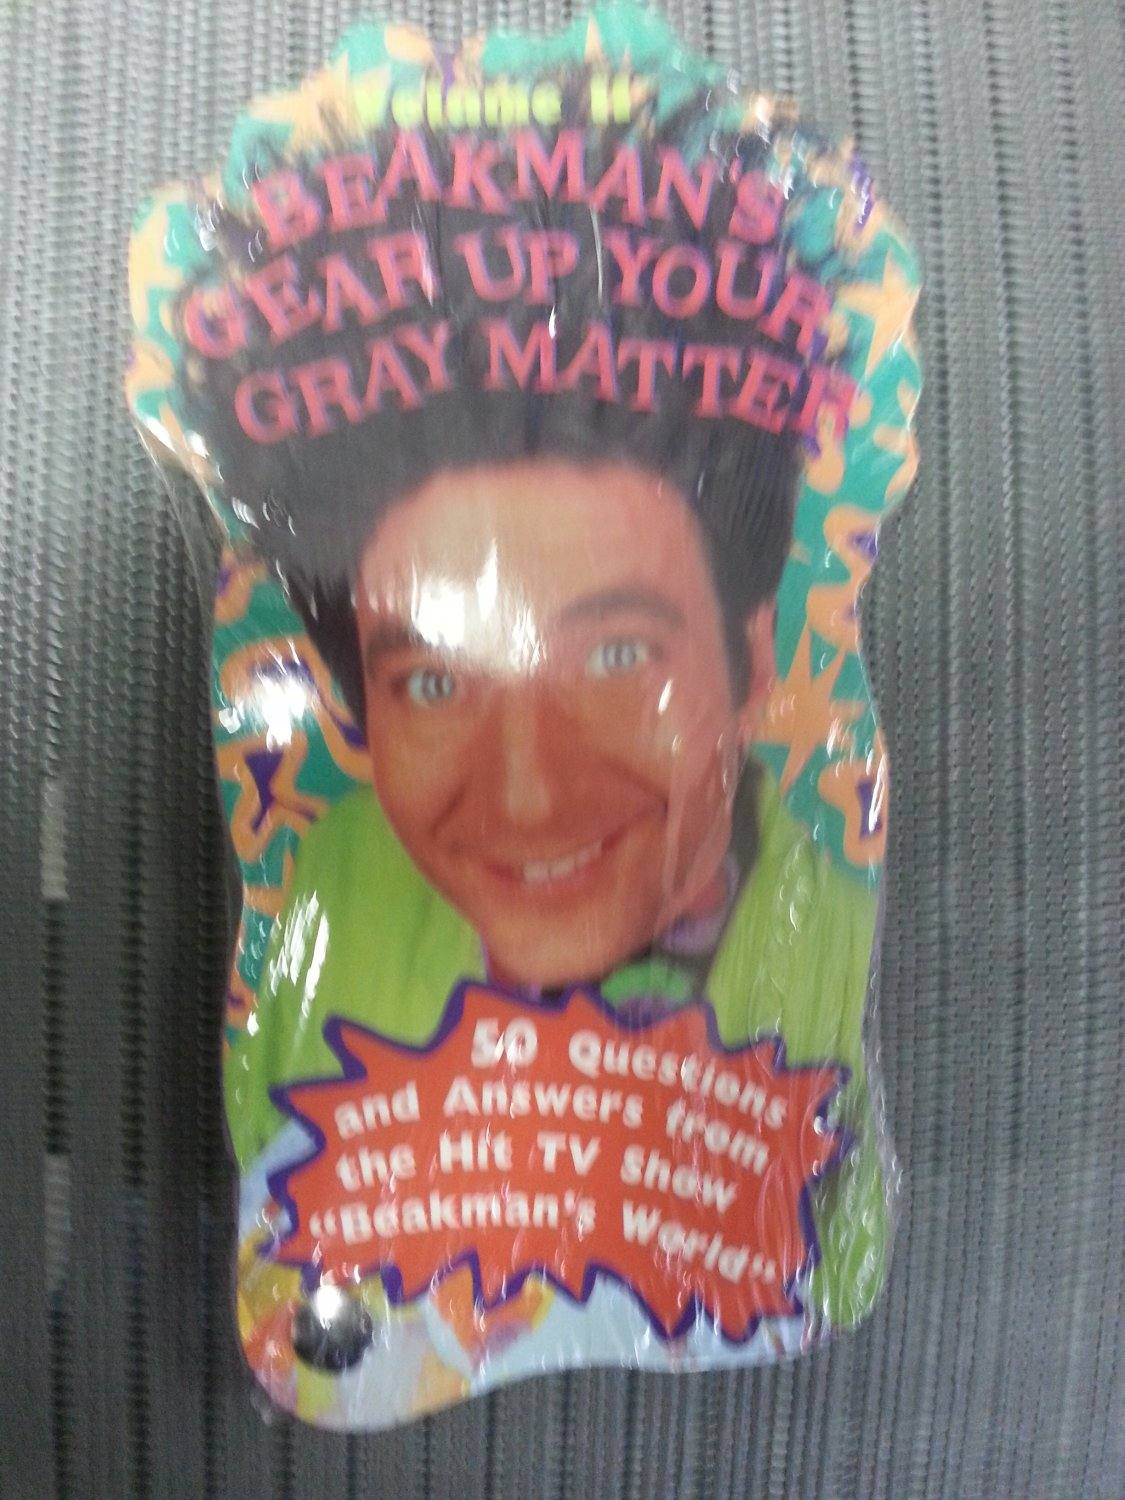 """Beakman's Gear Up Your Gray Matter:50 Questions and Answers from the Hit TV Show """"Beakman's World""""!"""